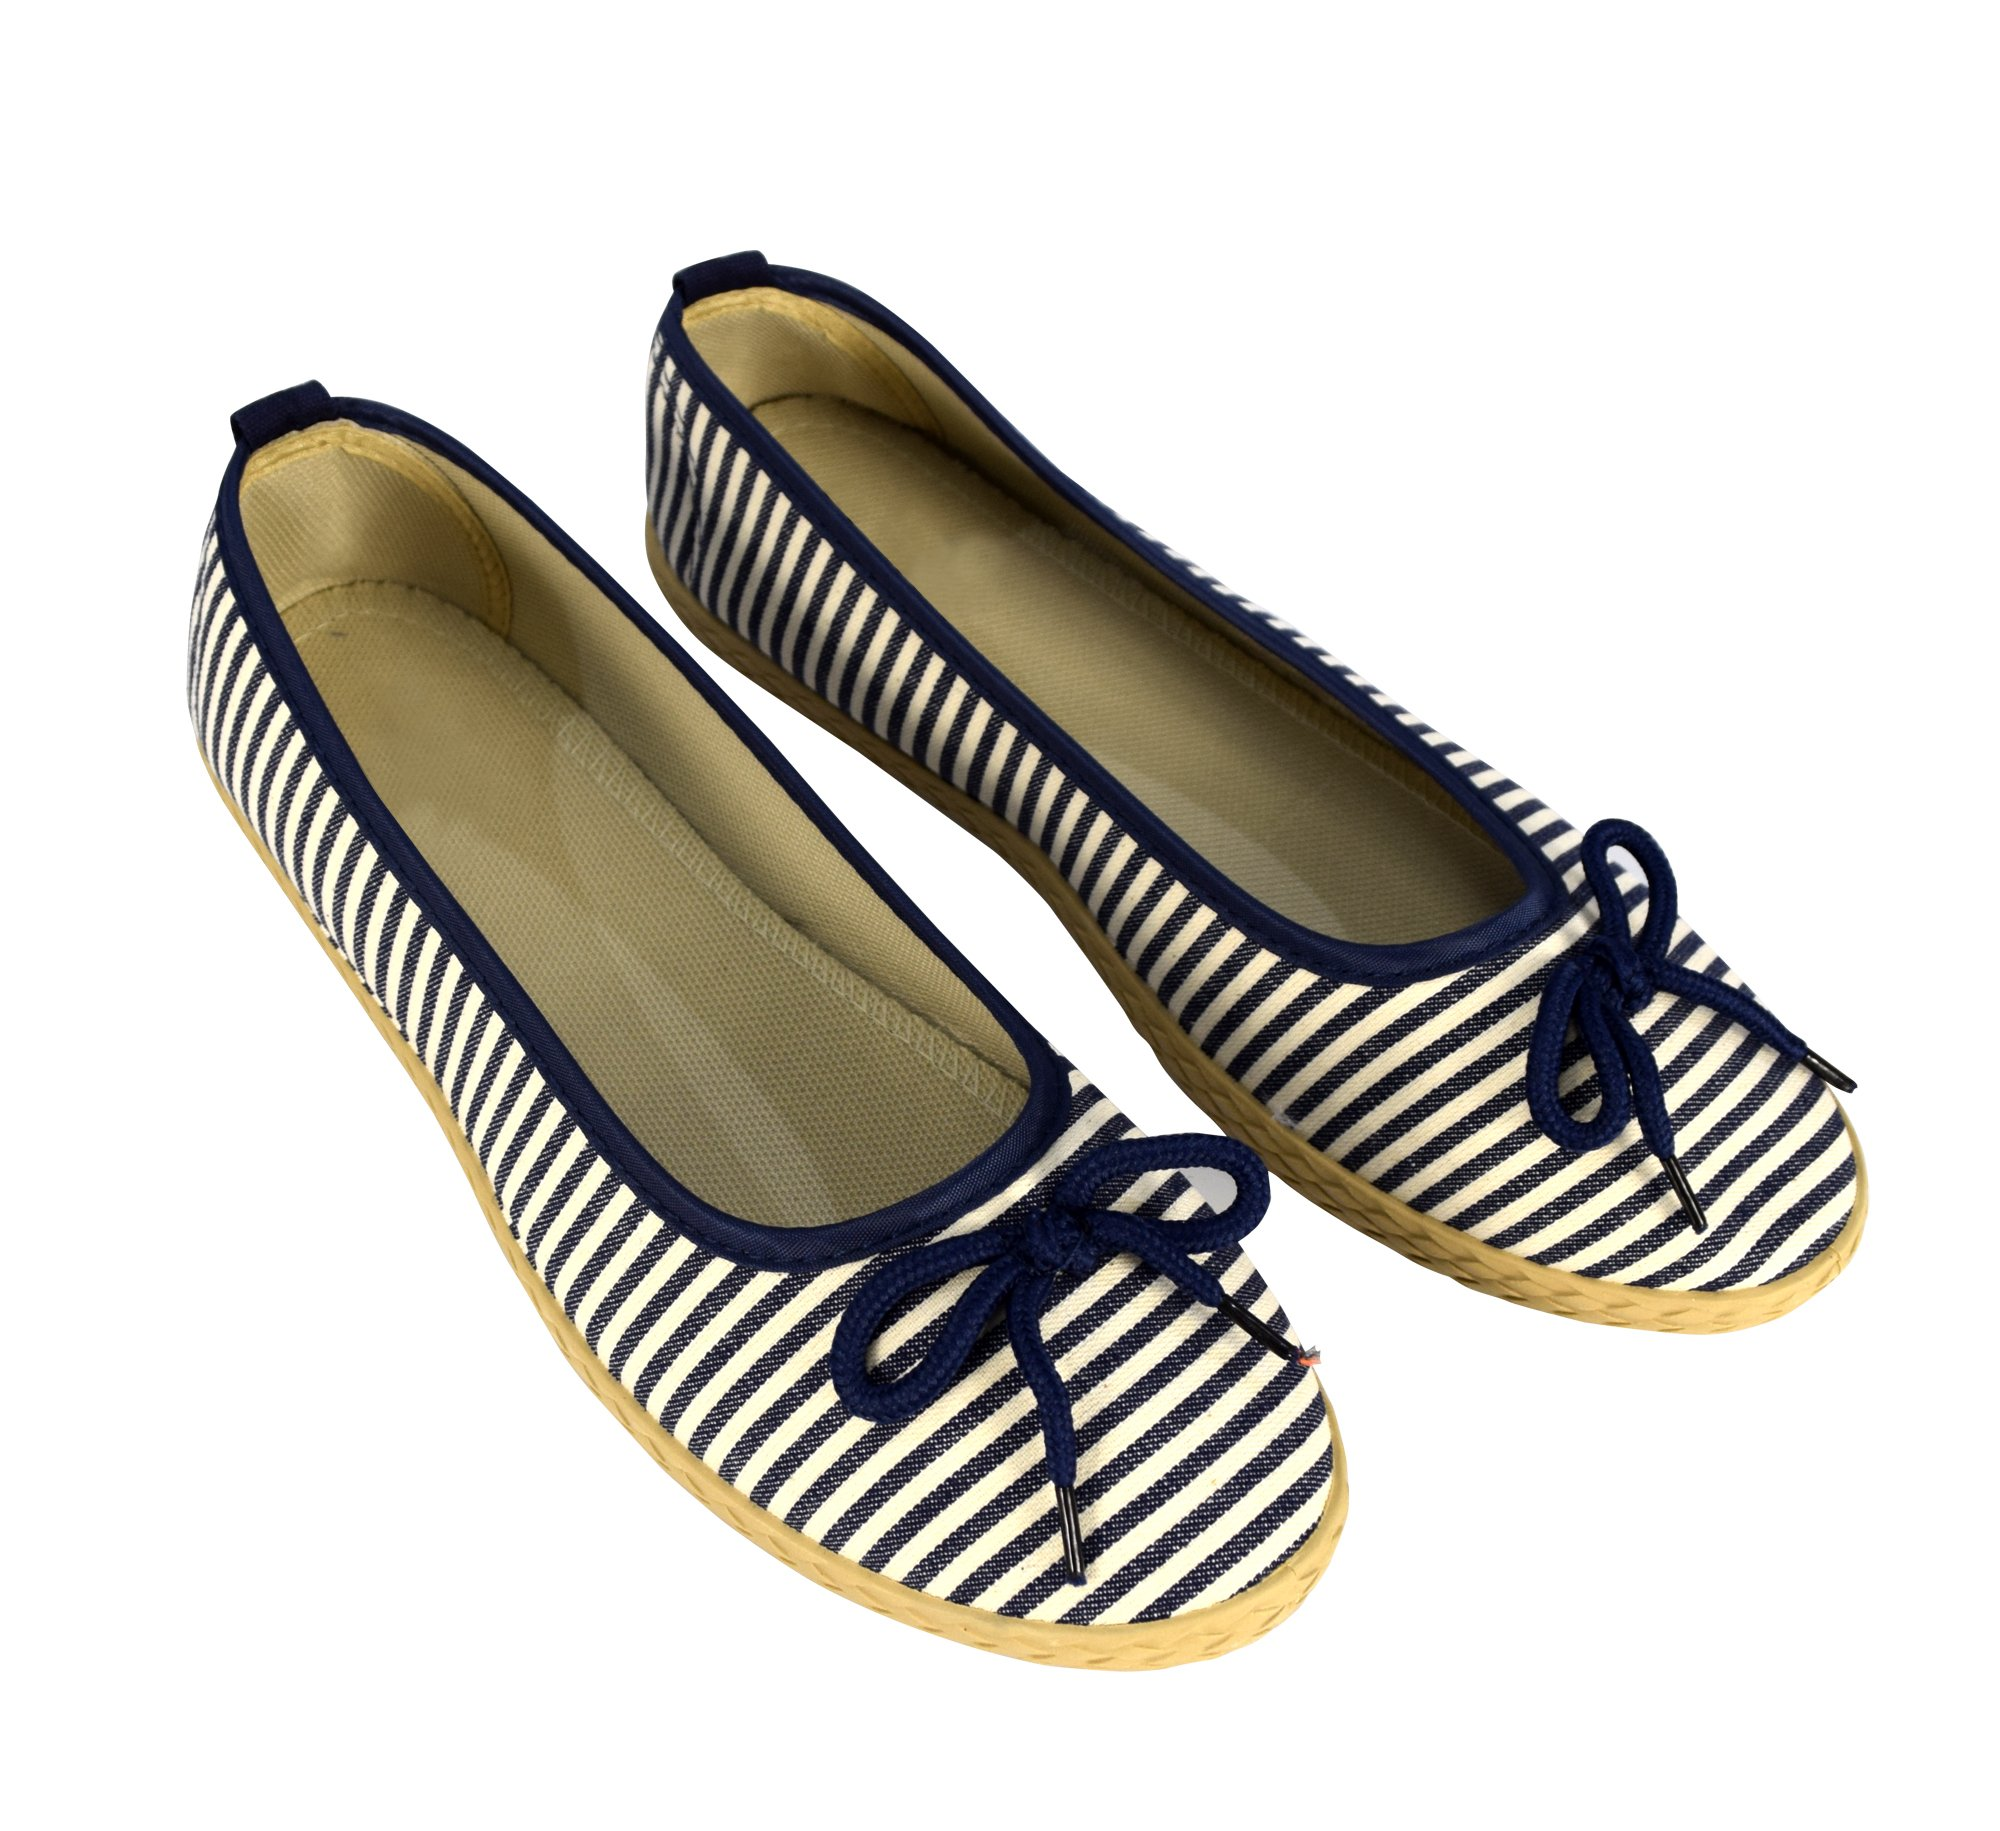 Peach Couture Womens Casual Striped Slip On Flat Espadrilles Bow Ballet Flats Shoes Navy 10 B(M) US